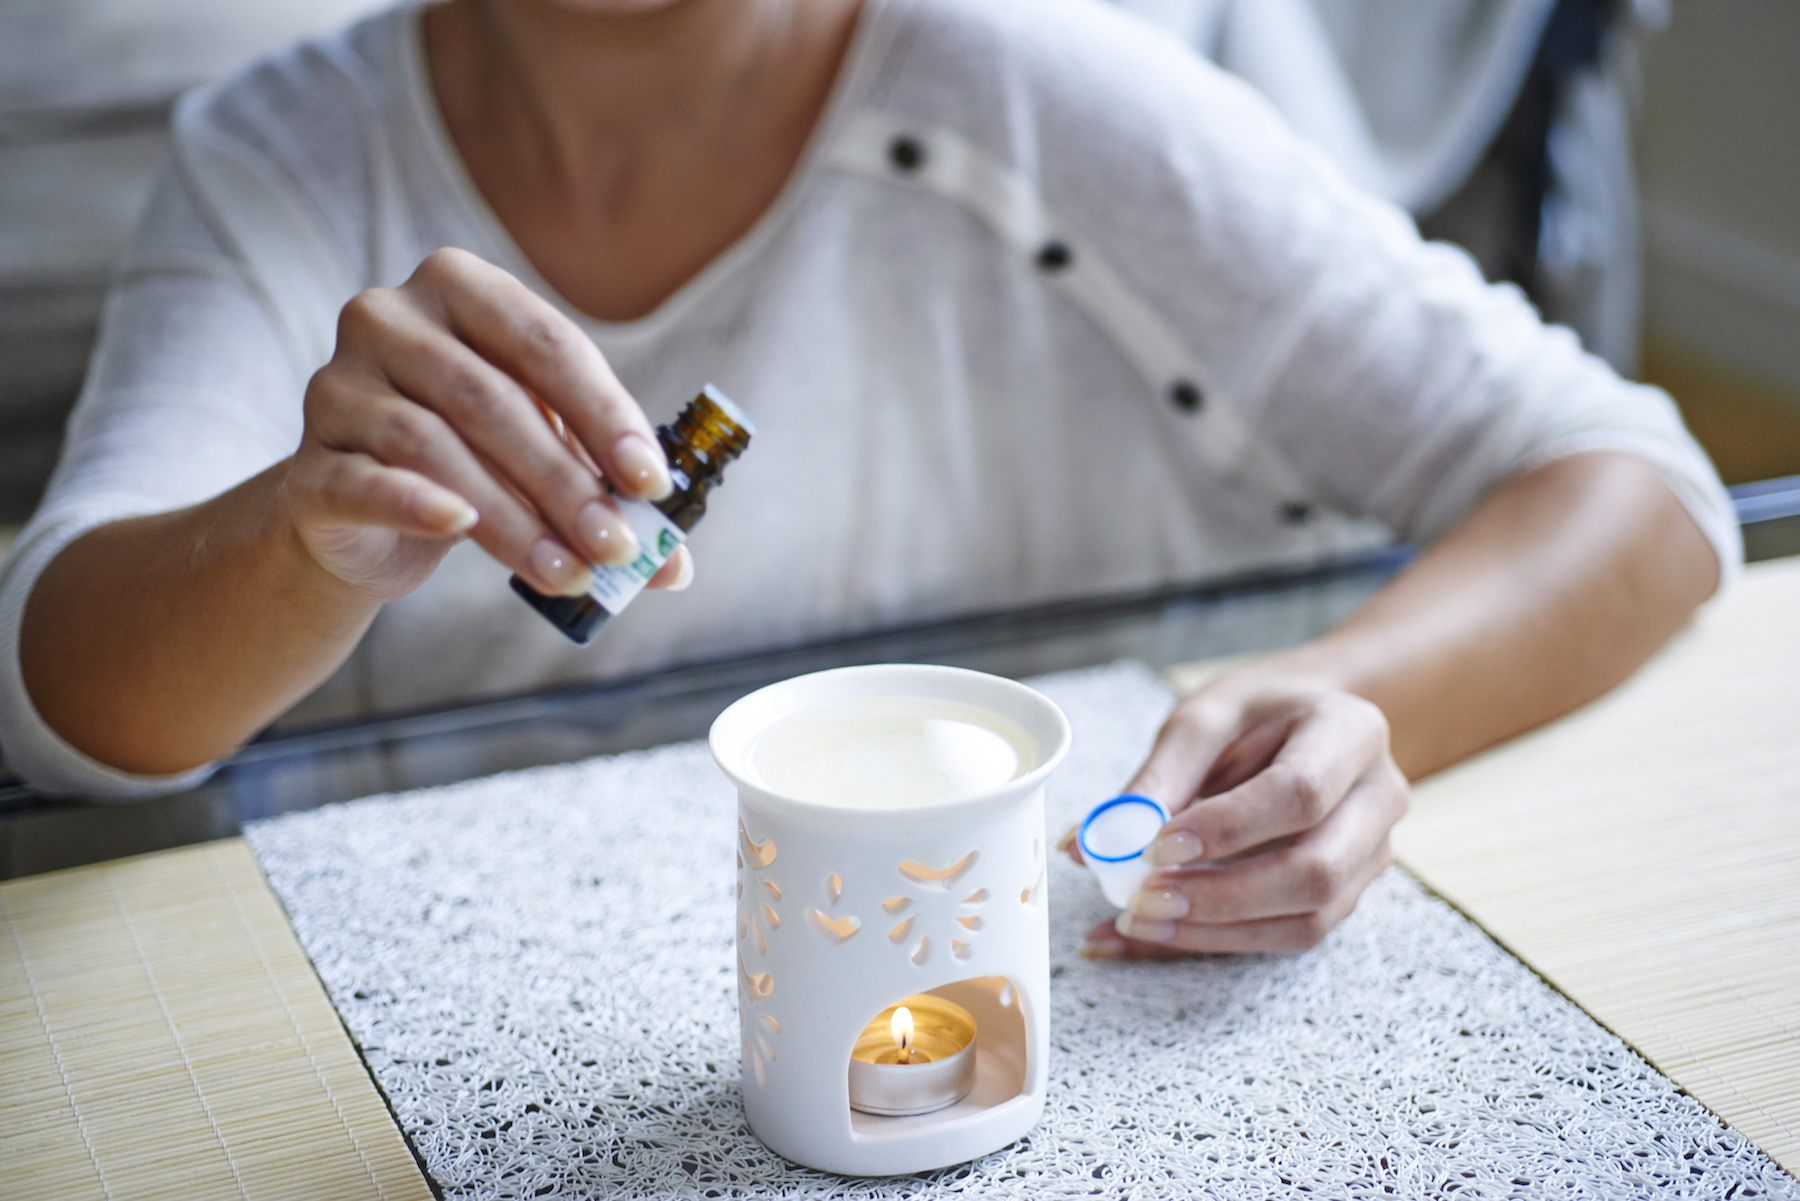 Woman adding Essential Oil to diffuer